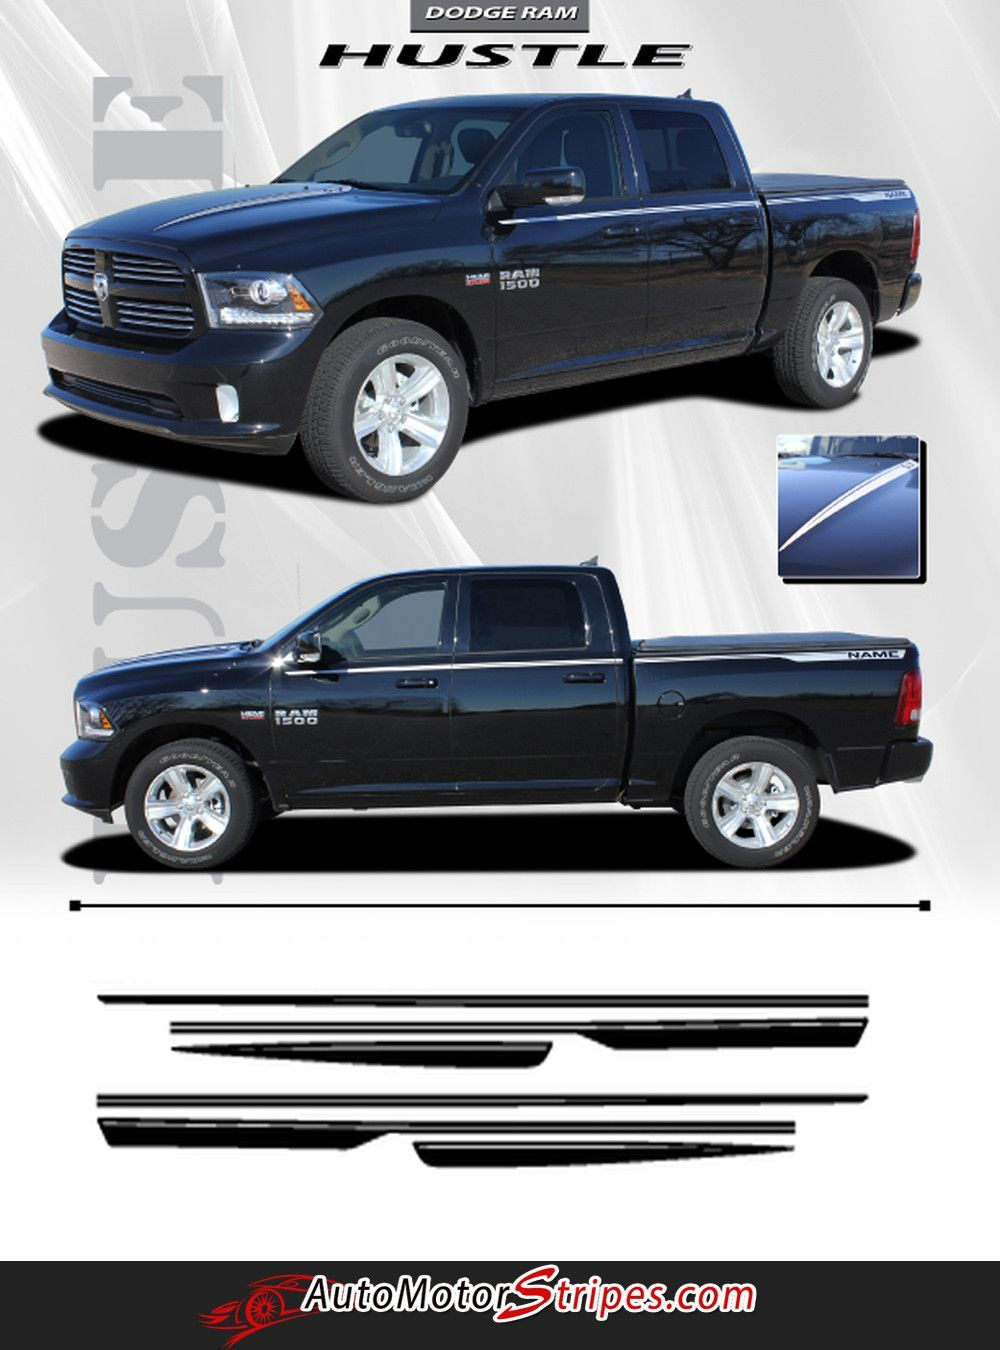 20092018 Dodge Ram Hustle Truck Hood Spears Spikes Side